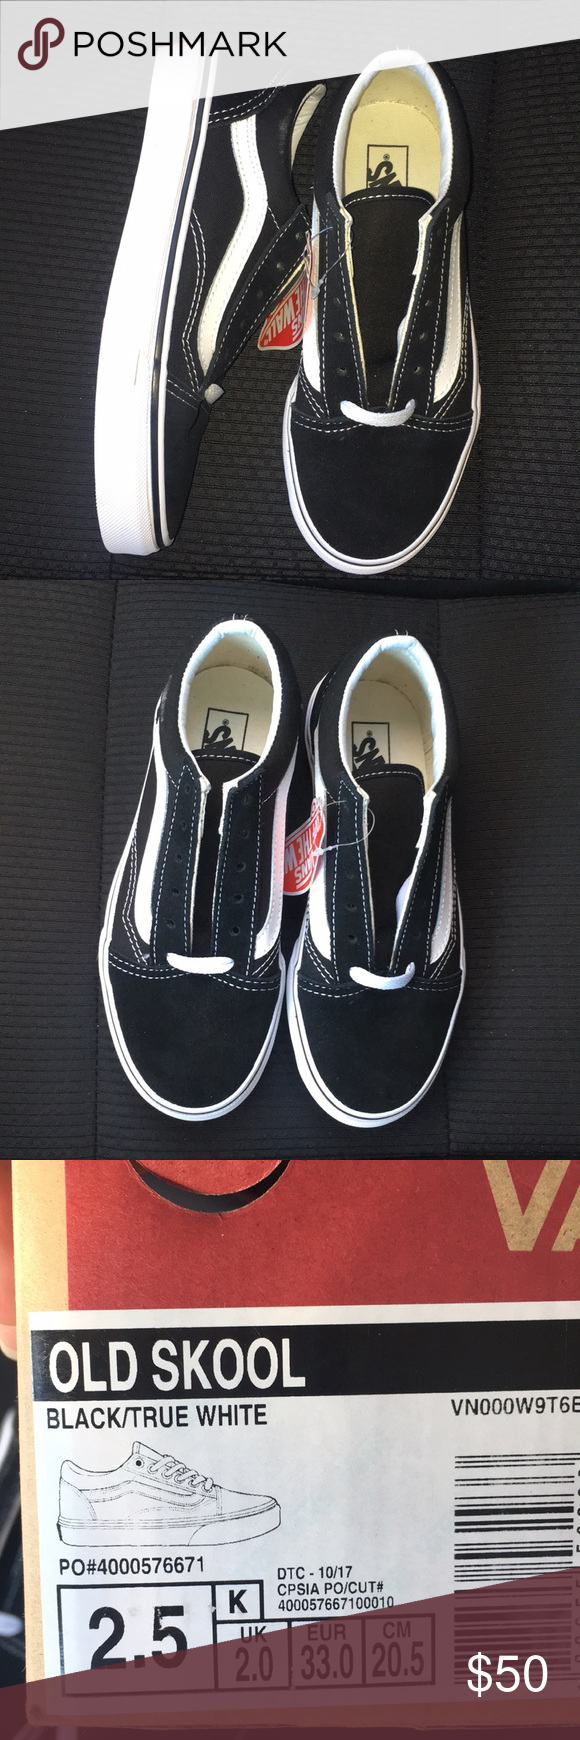 81c42a018d Old skool black and white NWT